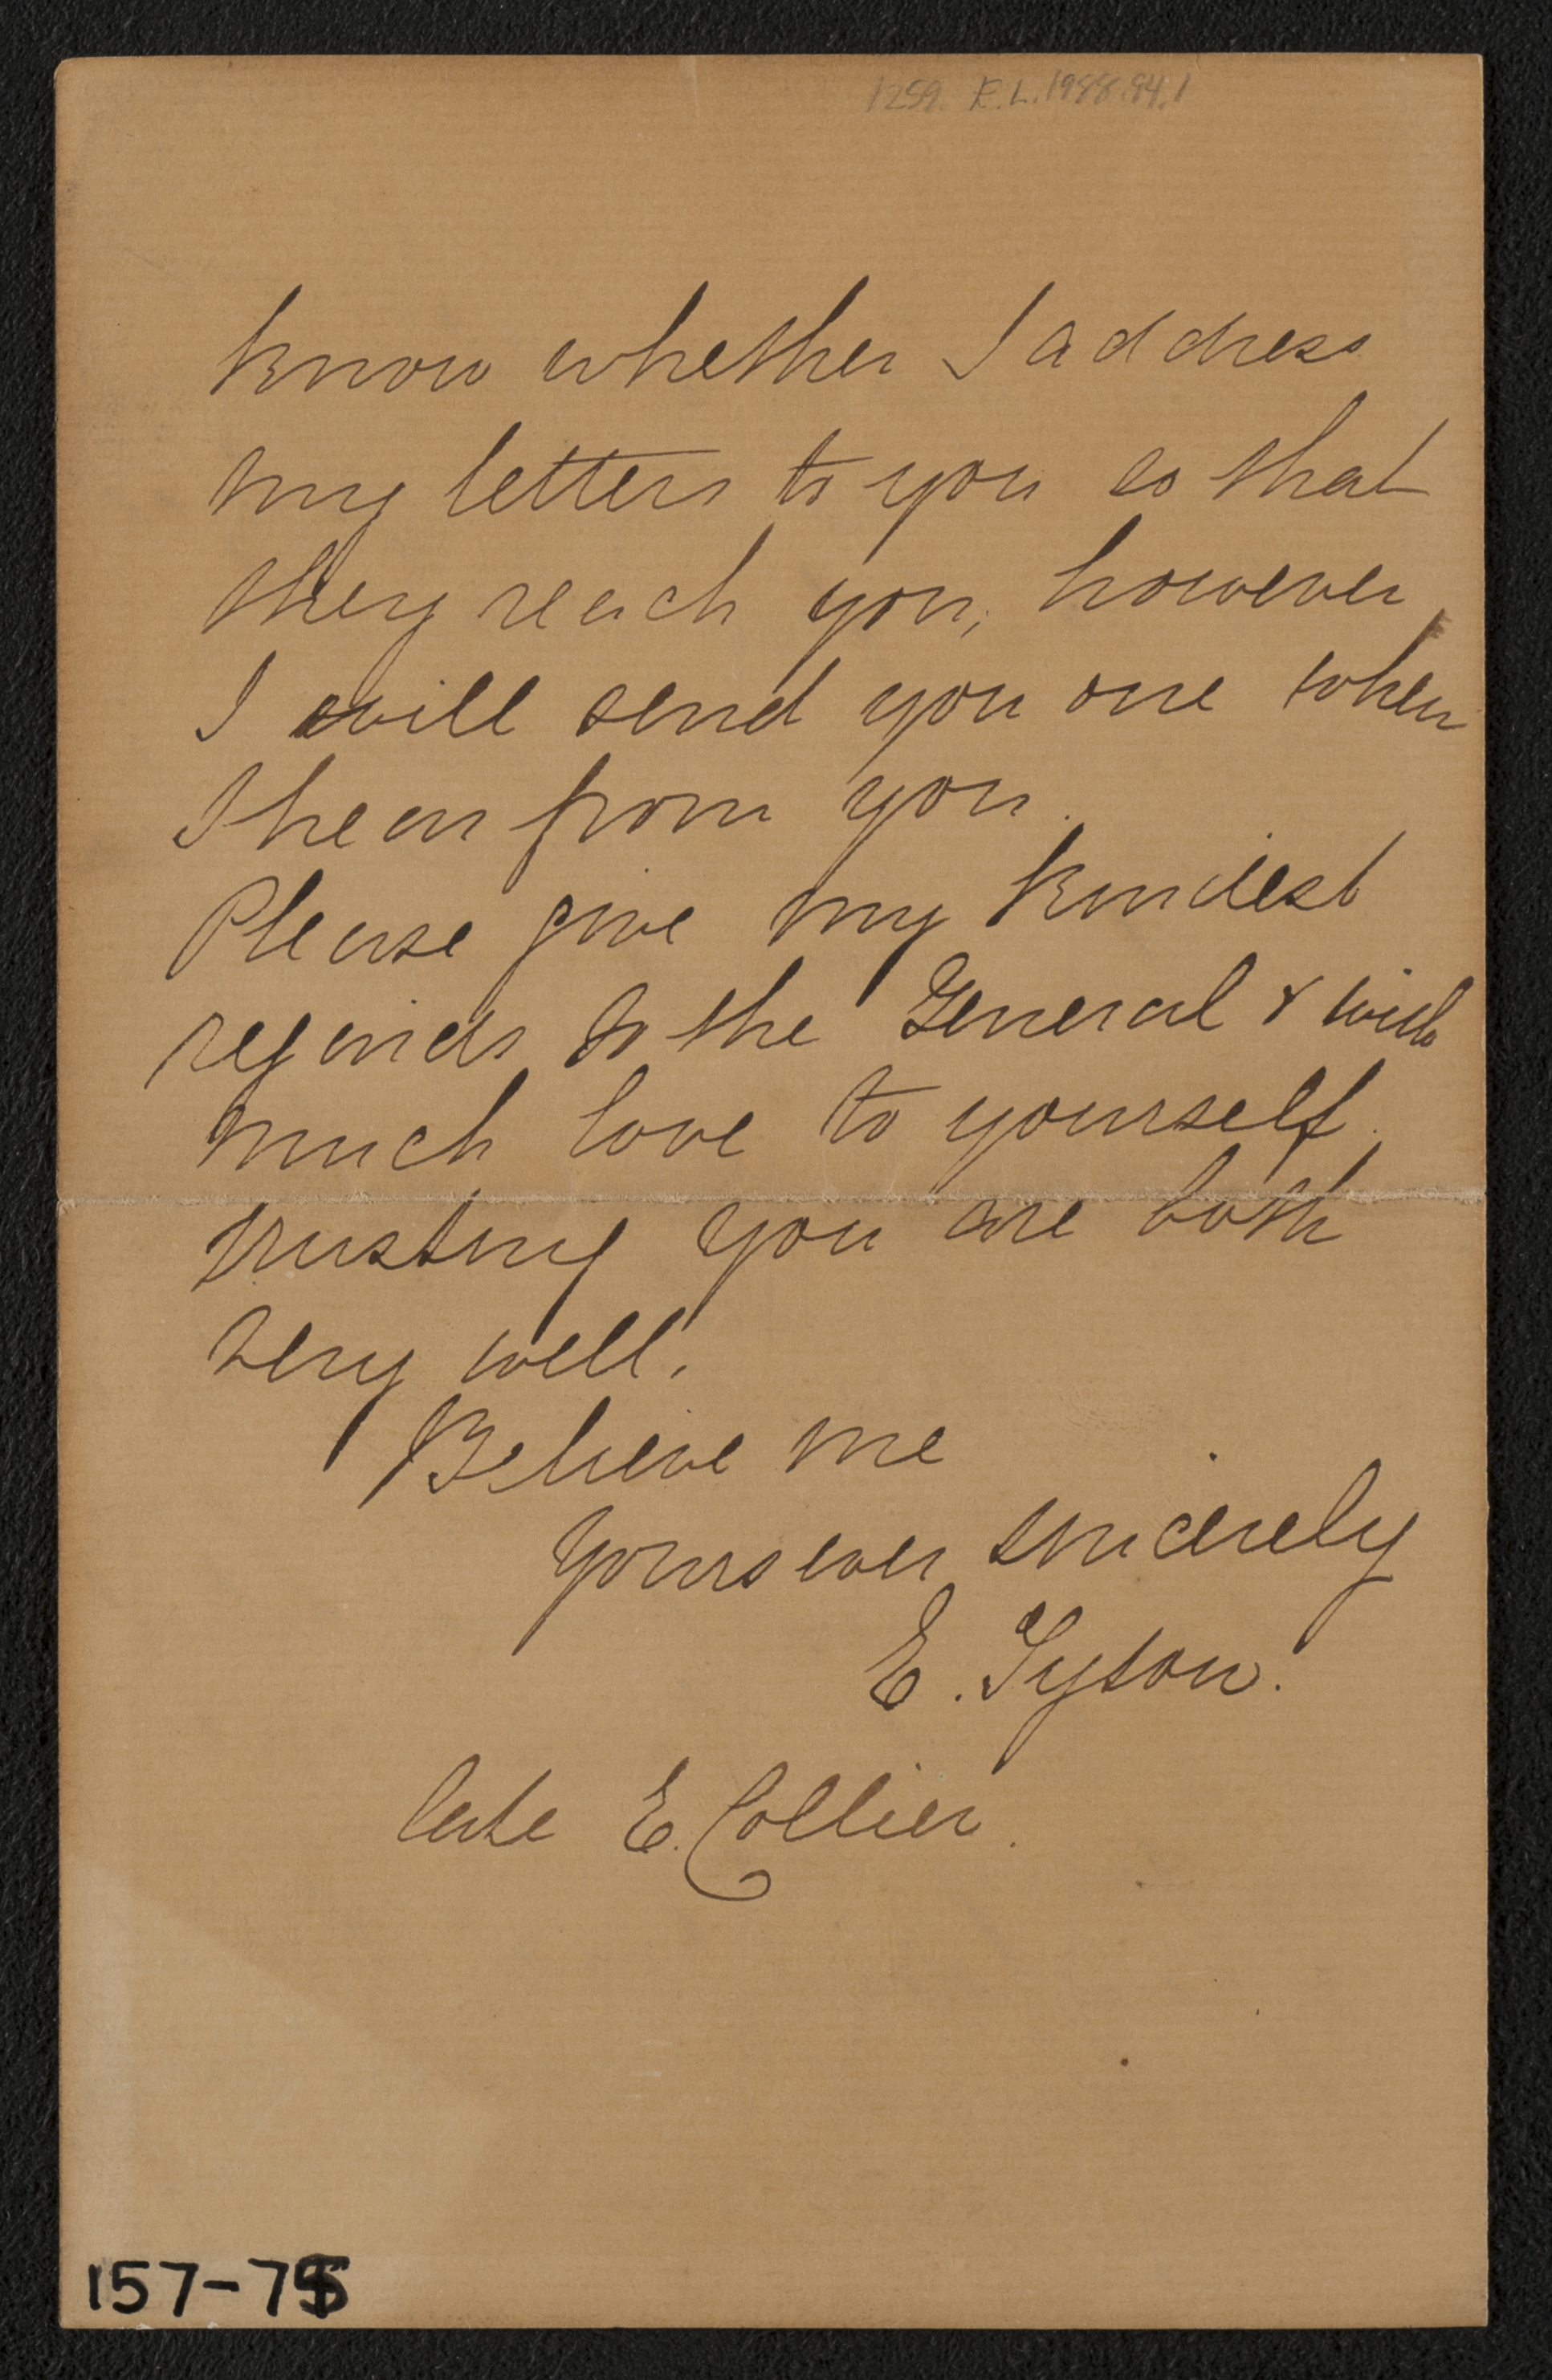 Letter: My dear Mrs. Stratton (M. Lavinia Warren) from E. Collier, August  30, 1878 (page 4) ...